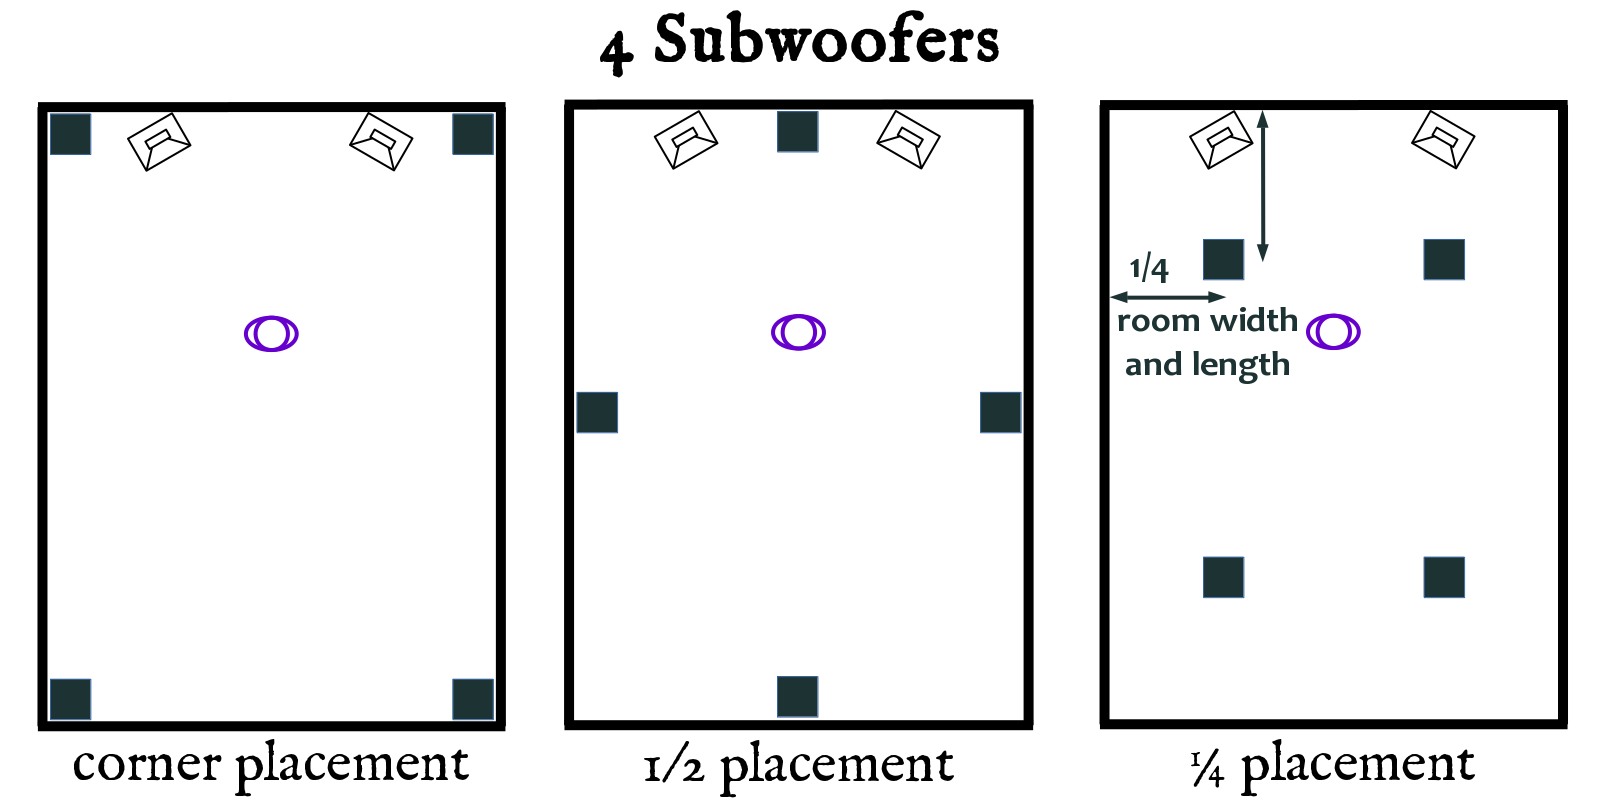 All Of These Placements Involve Placing Four Subwoofers In A Place With Specific Effects On The Room Modes So That Their Interactions Can Cancel Out